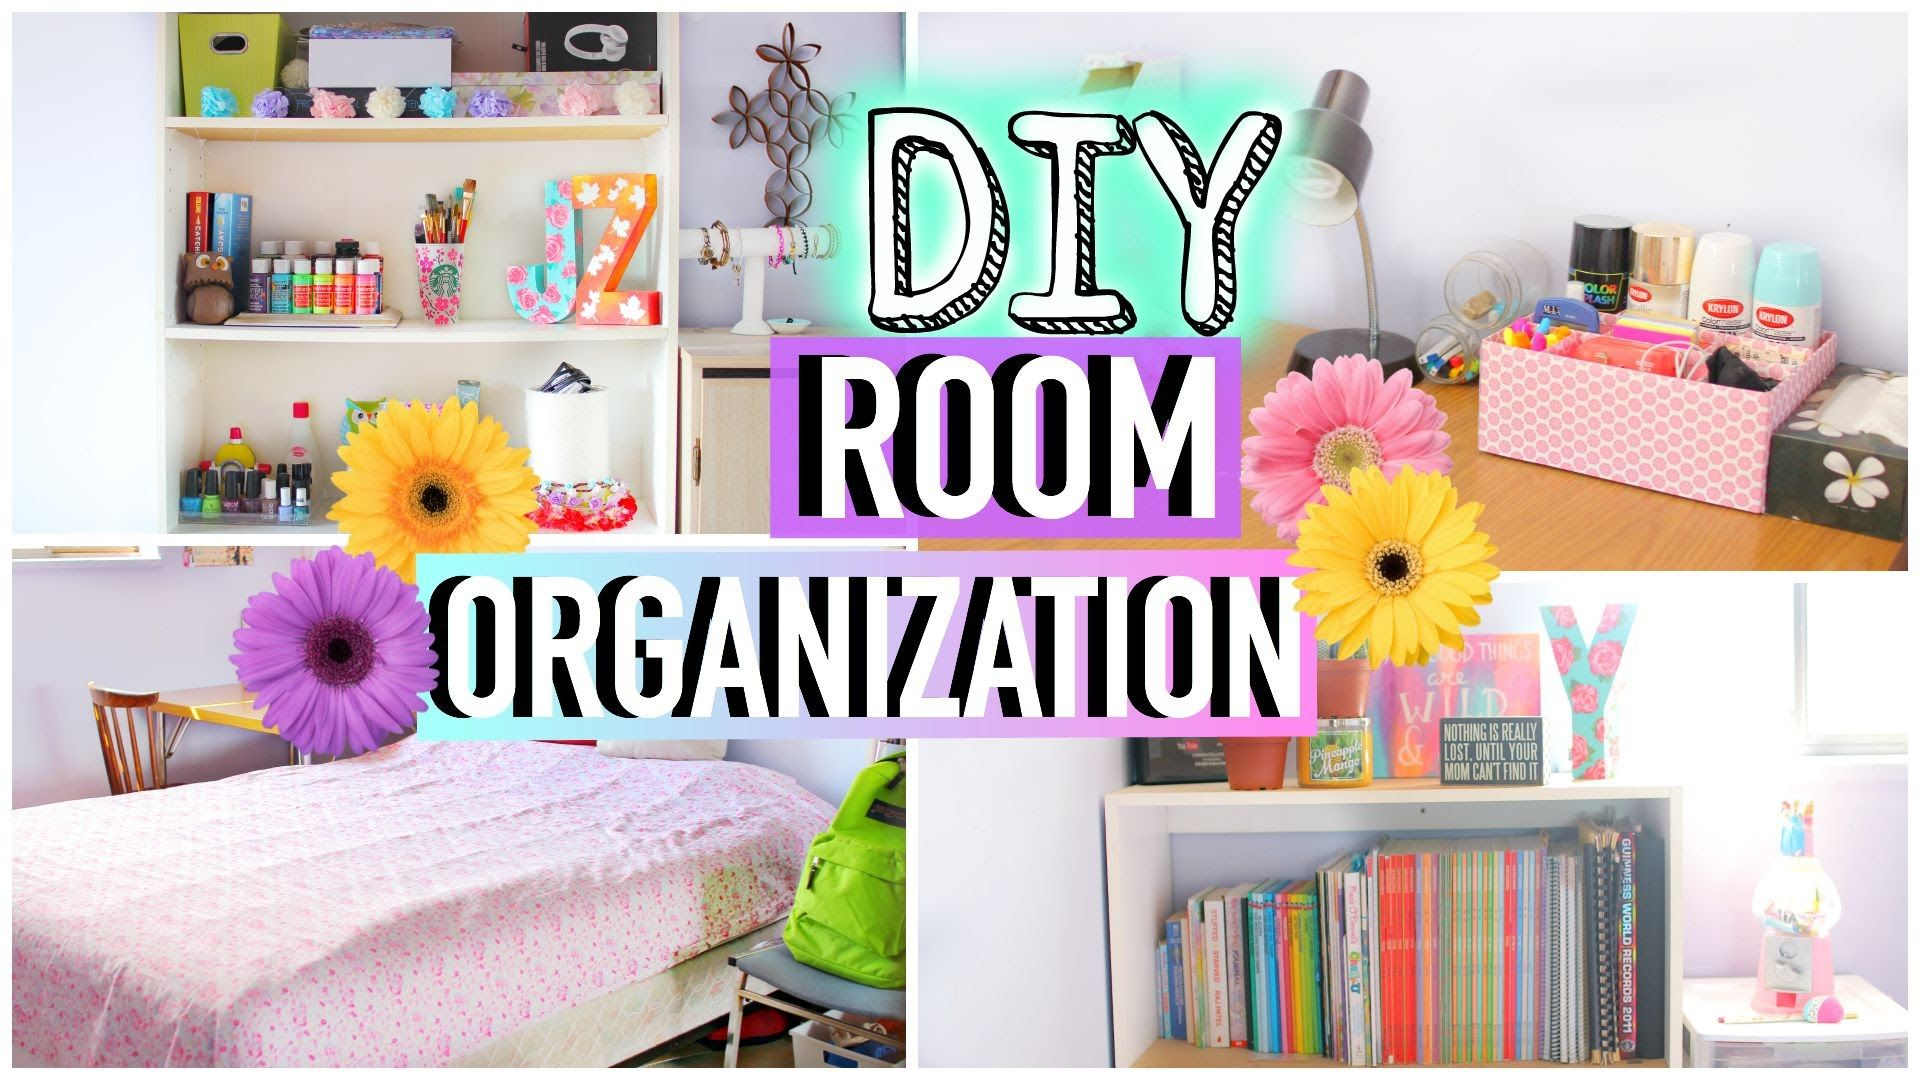 How to Clean Your Room! DIY Room Organization and Storage